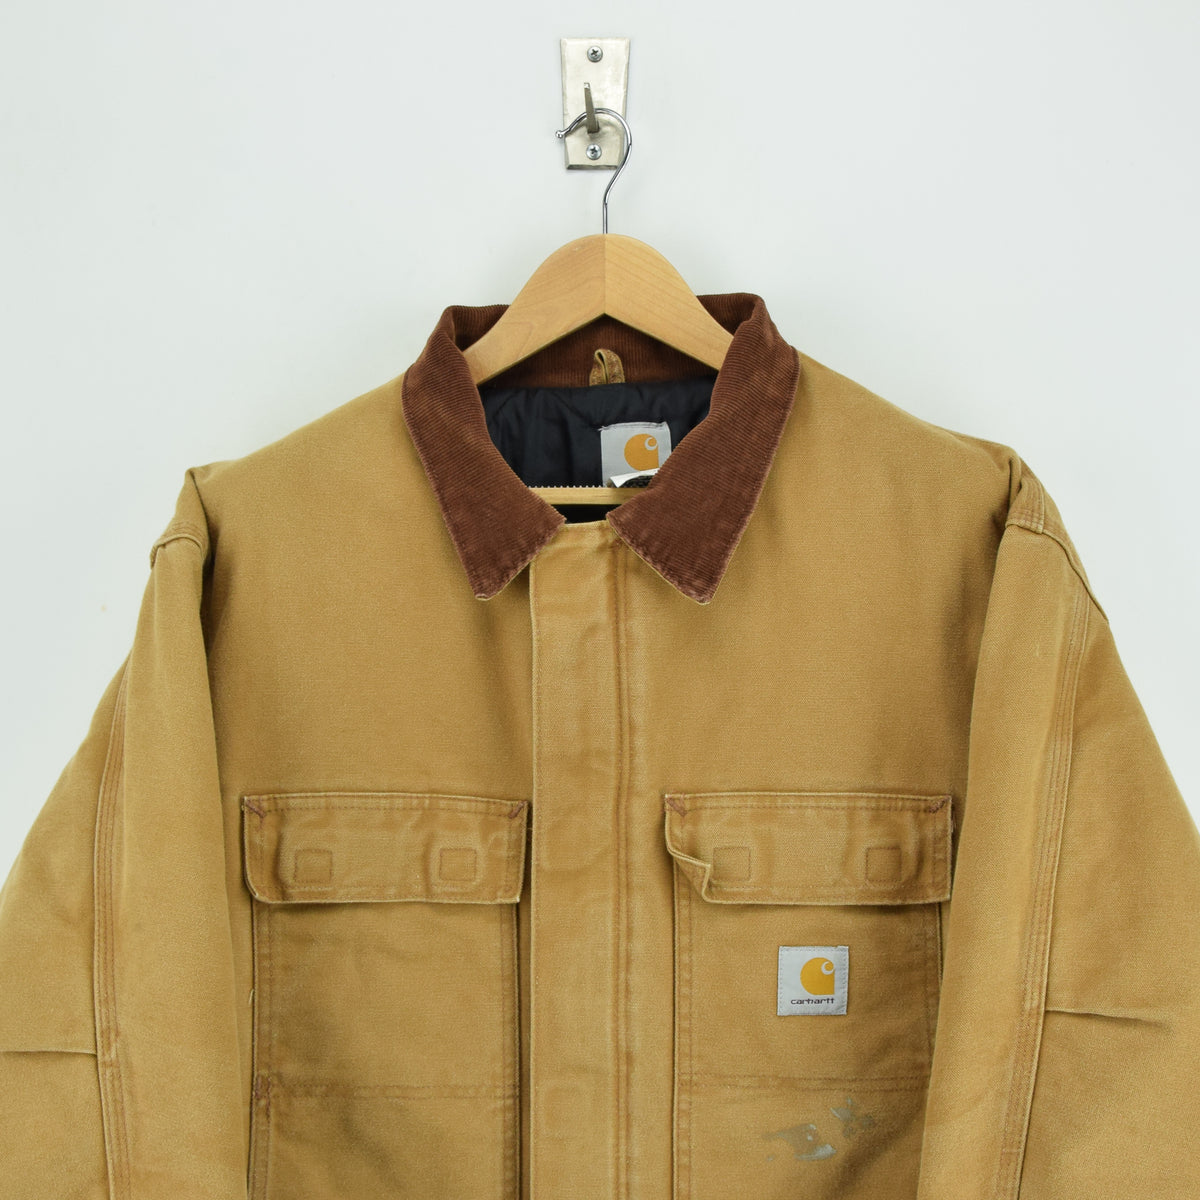 Vintage Carhartt Duck Canvas Tan Brown Worker Chore Jacket Made in USA XXL chest